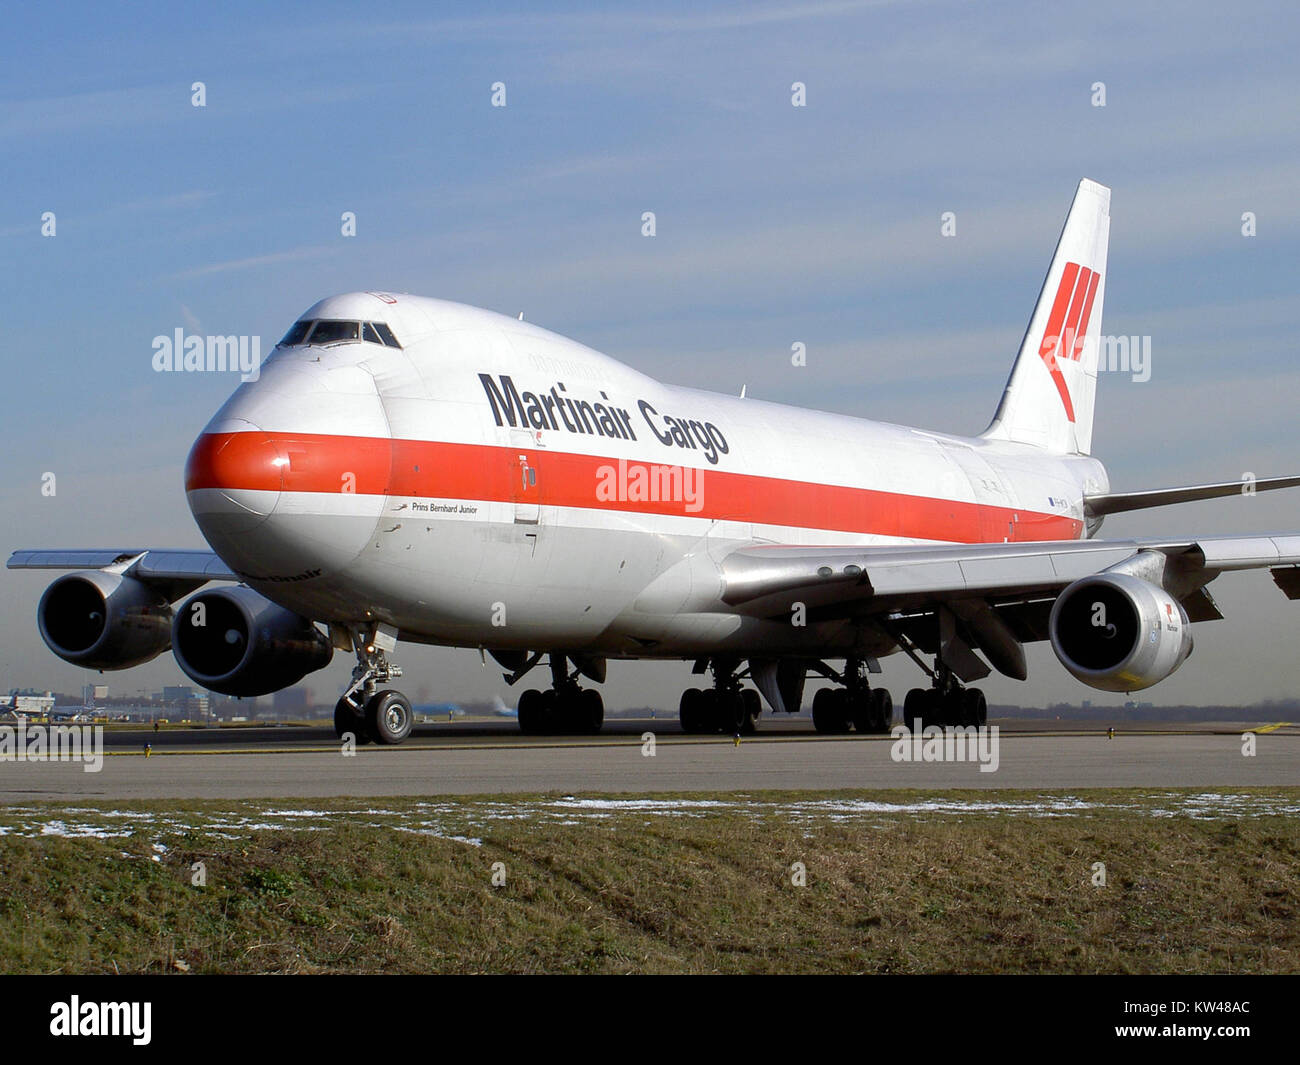 Boeing 747 Martinair Cargo PH MCN at Schiphol pic1 - Stock Image